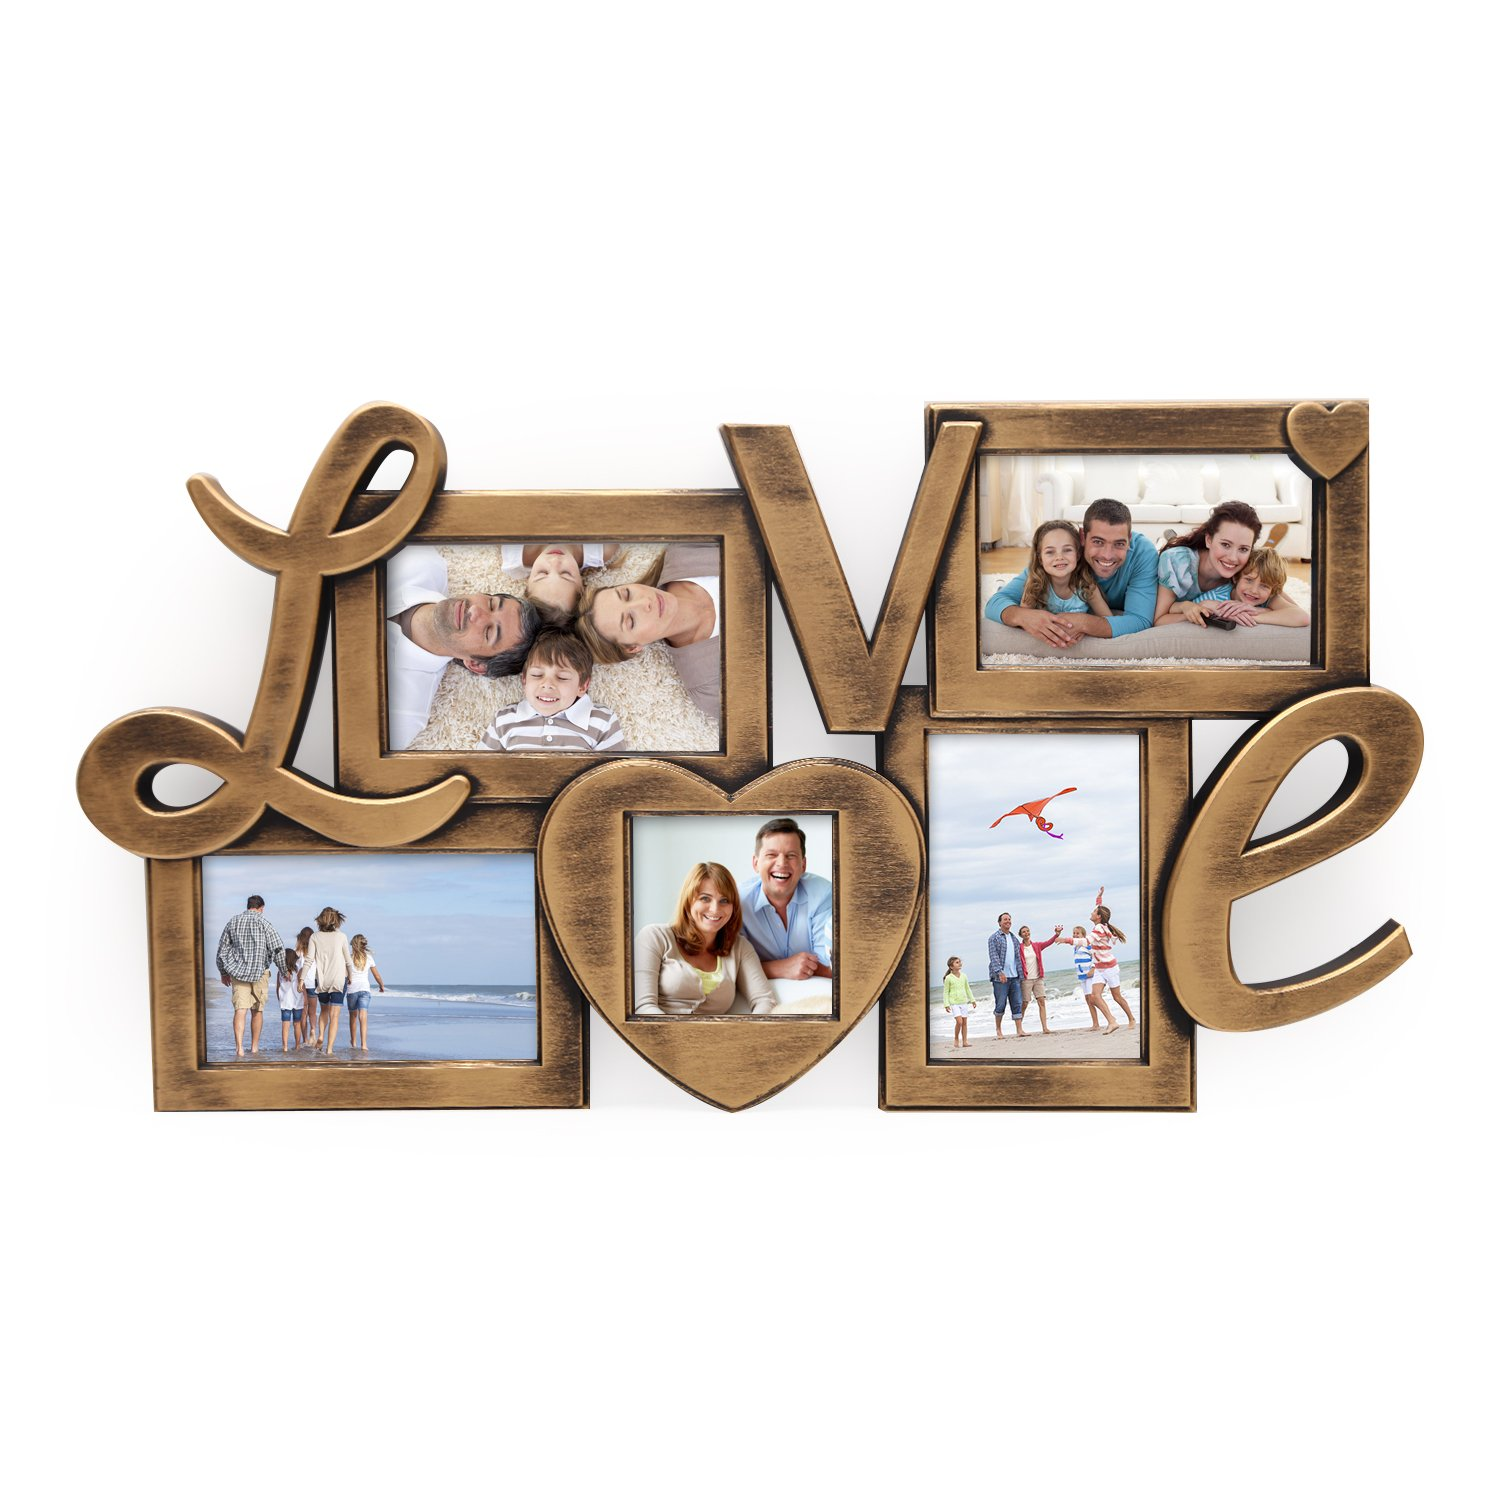 Deco De Ville 5 Opening ''LOVE'' Theme Plastic Decorative Antique Golden Puzzle Collage Picture Photo Frame, Wall Hanging, Gold